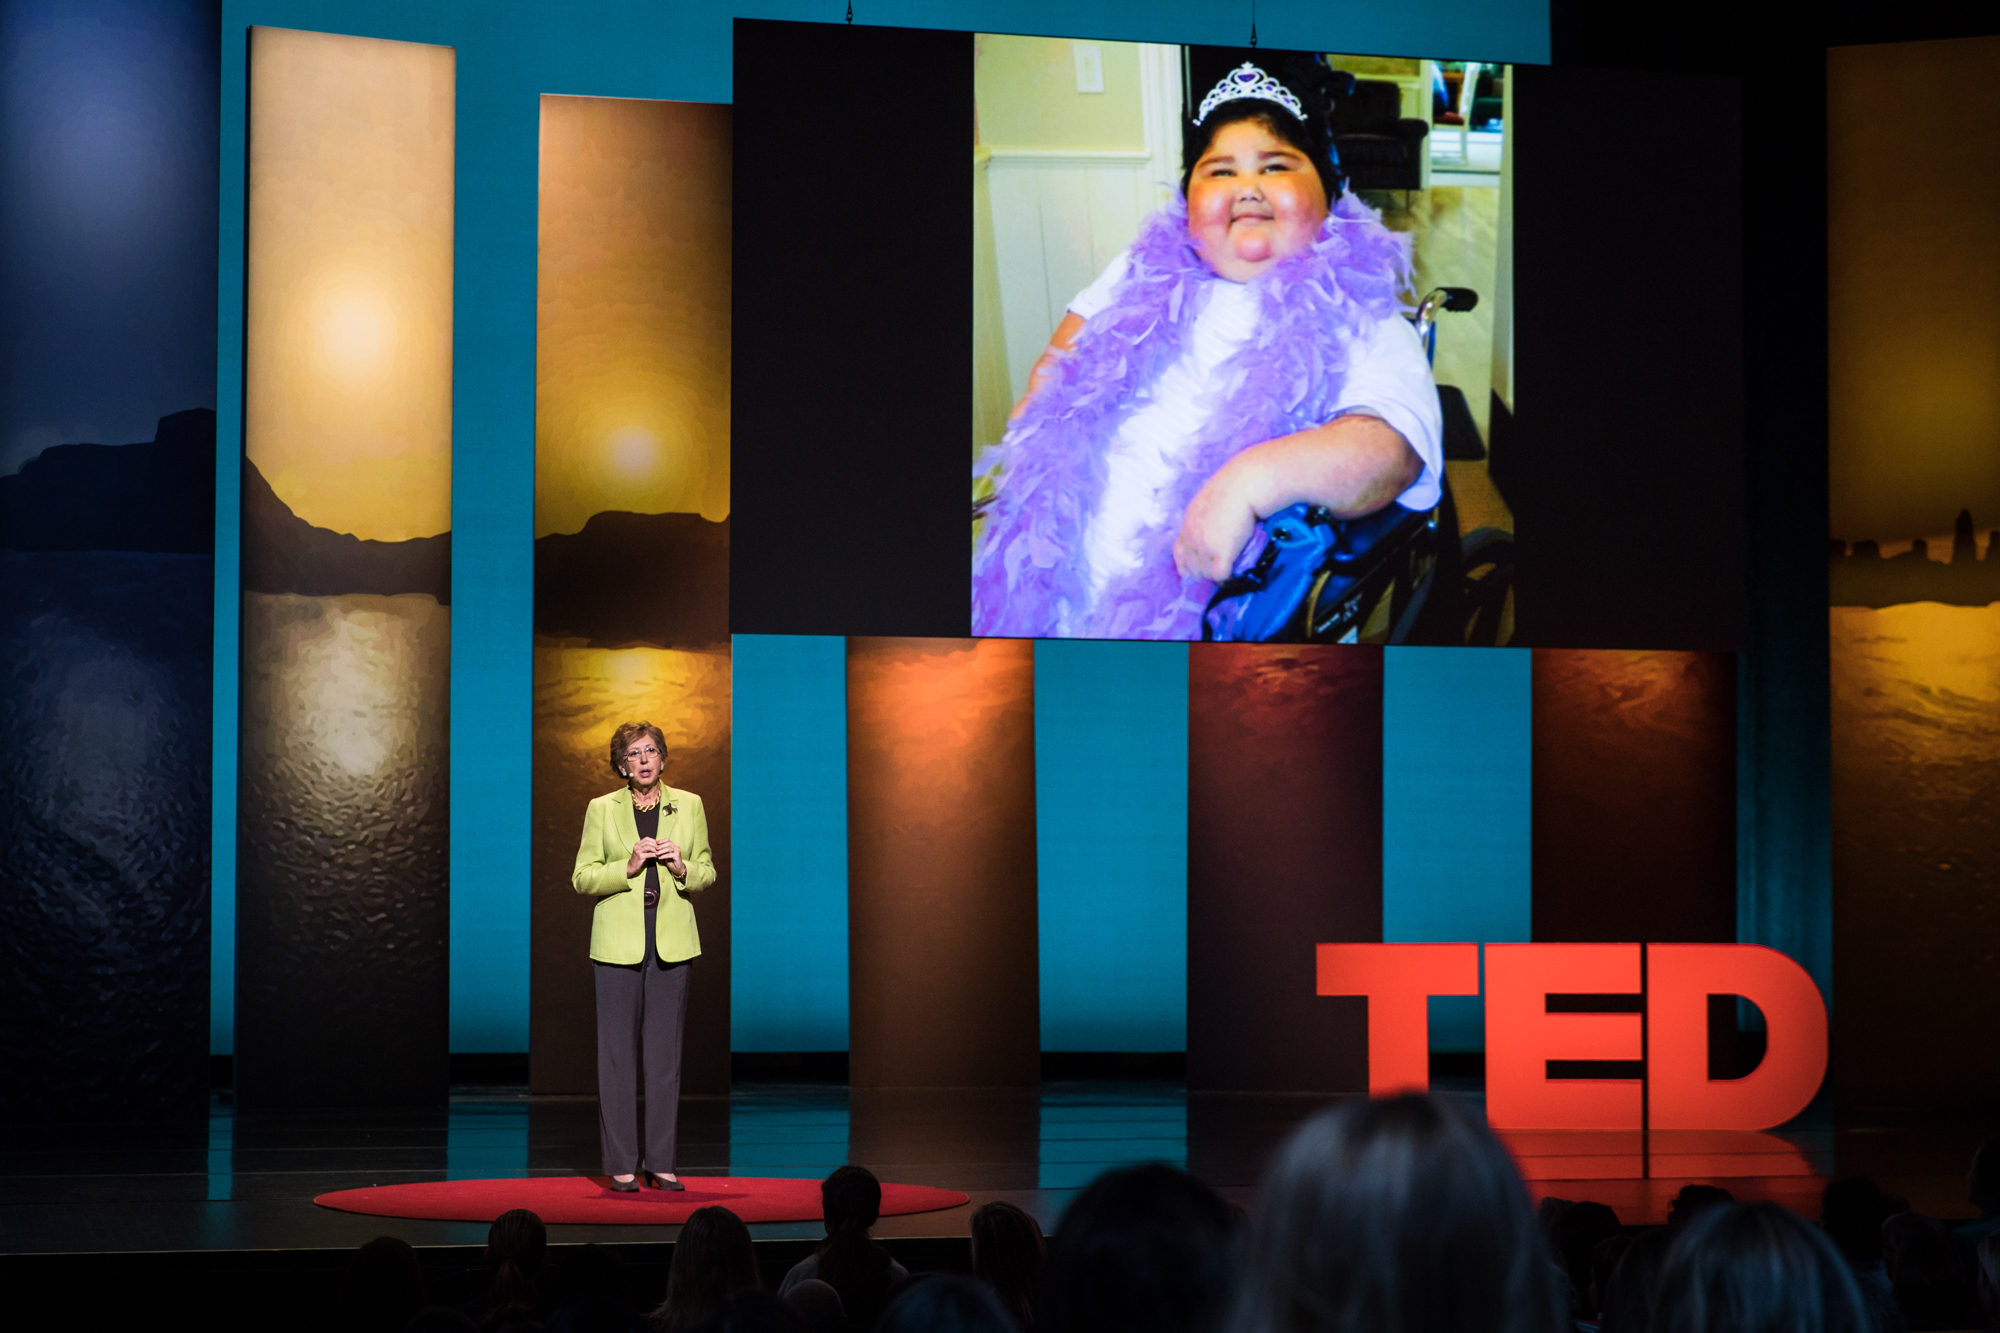 Kathy Hull at TEDWomen 2016 - It's About Time, October 26-28, 2016, Yerba Buena Centre for the Arts, San Francisco, California. Photo: Marla Aufmuth / TED